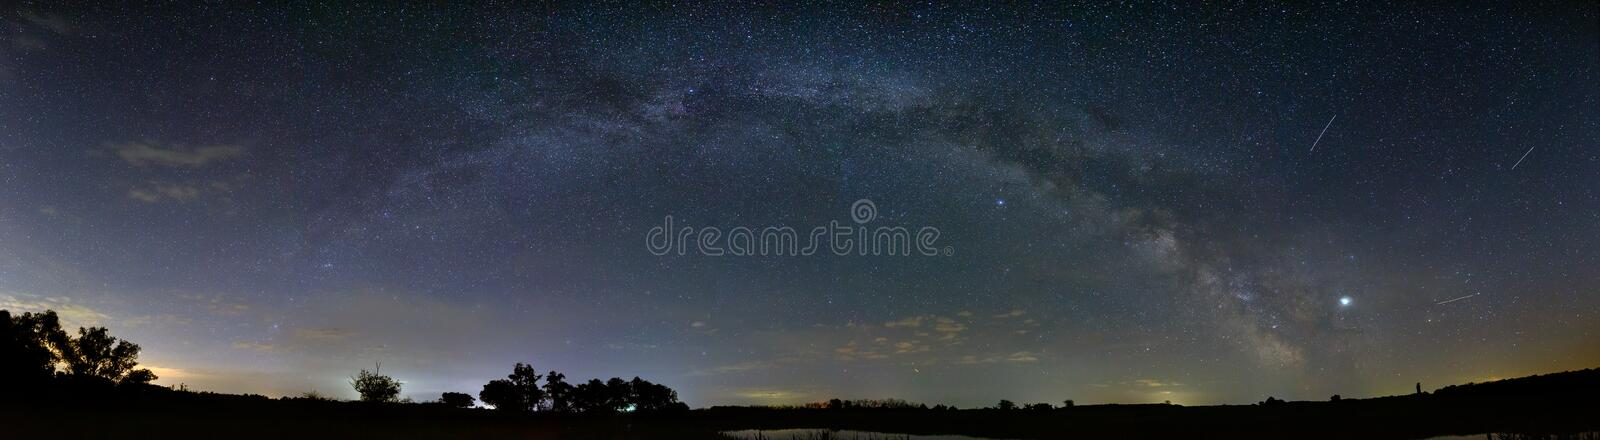 Bright stars in the night sky. Panoramic view of the arch of the Milky Way. Outer space photographed with long exposure.  stock image